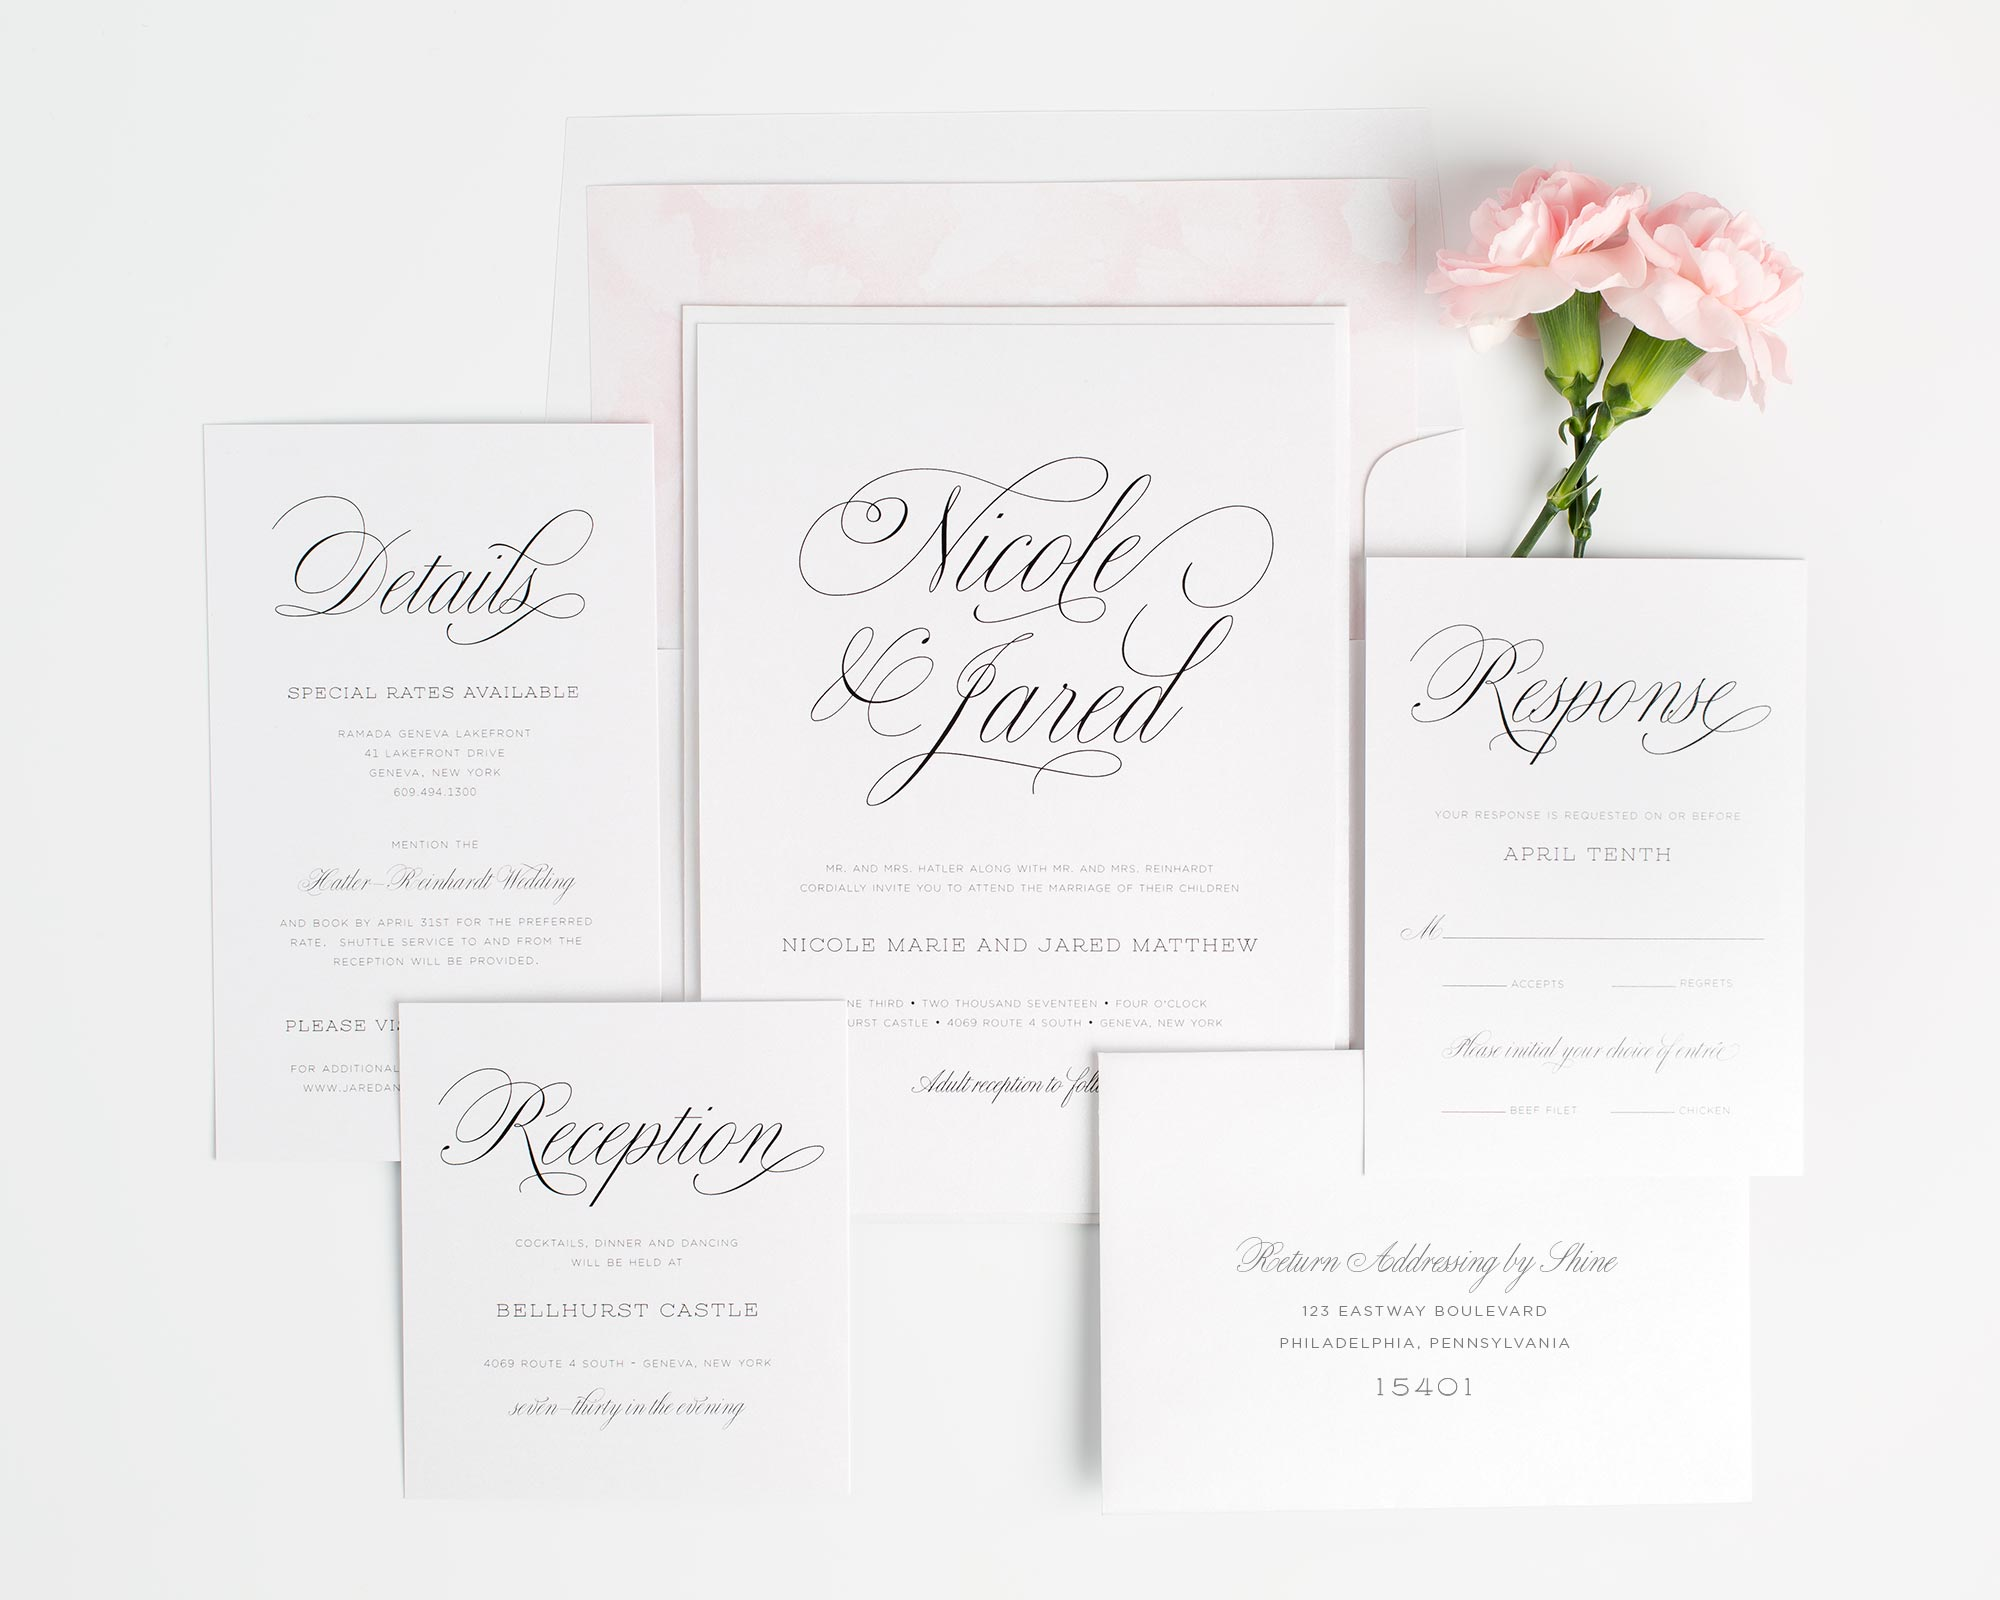 Floral Watercolor Wedding Invitations in Blush Pink